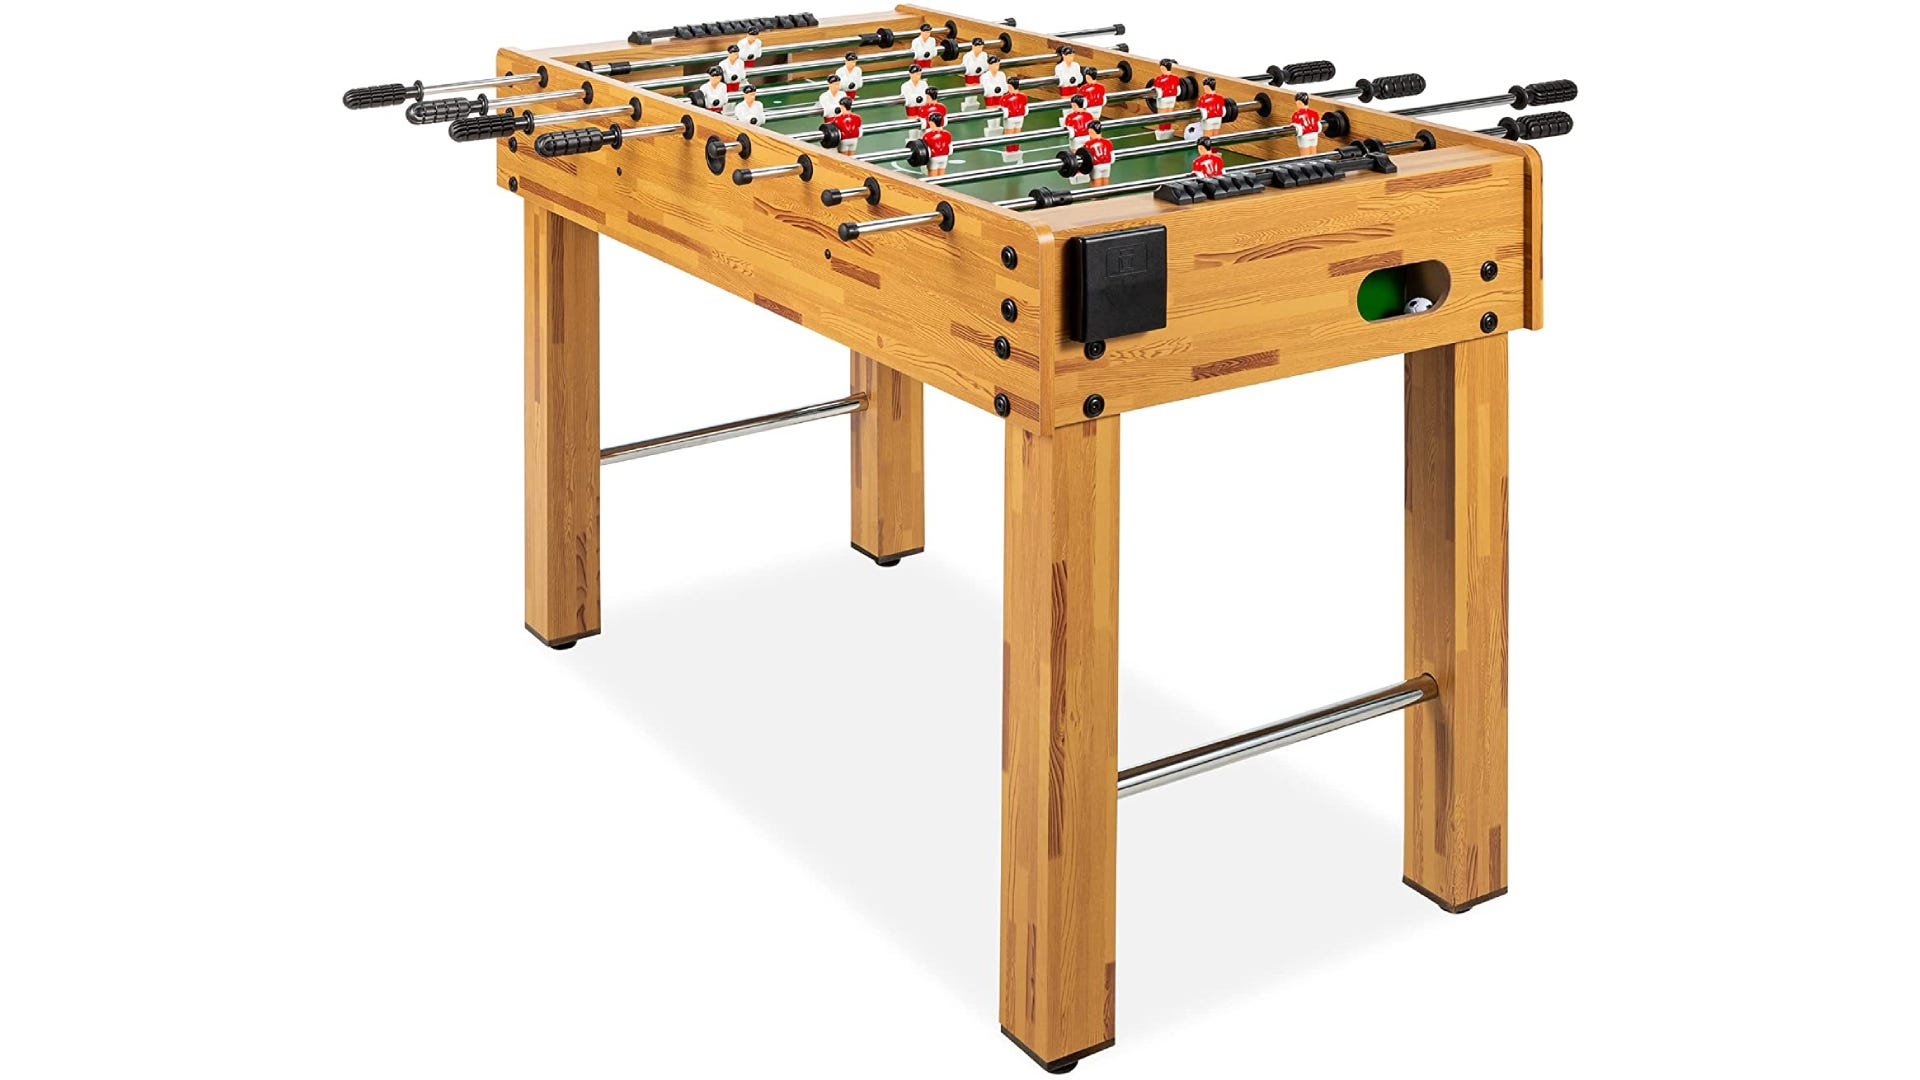 light-colored wooden foosball with red and white players